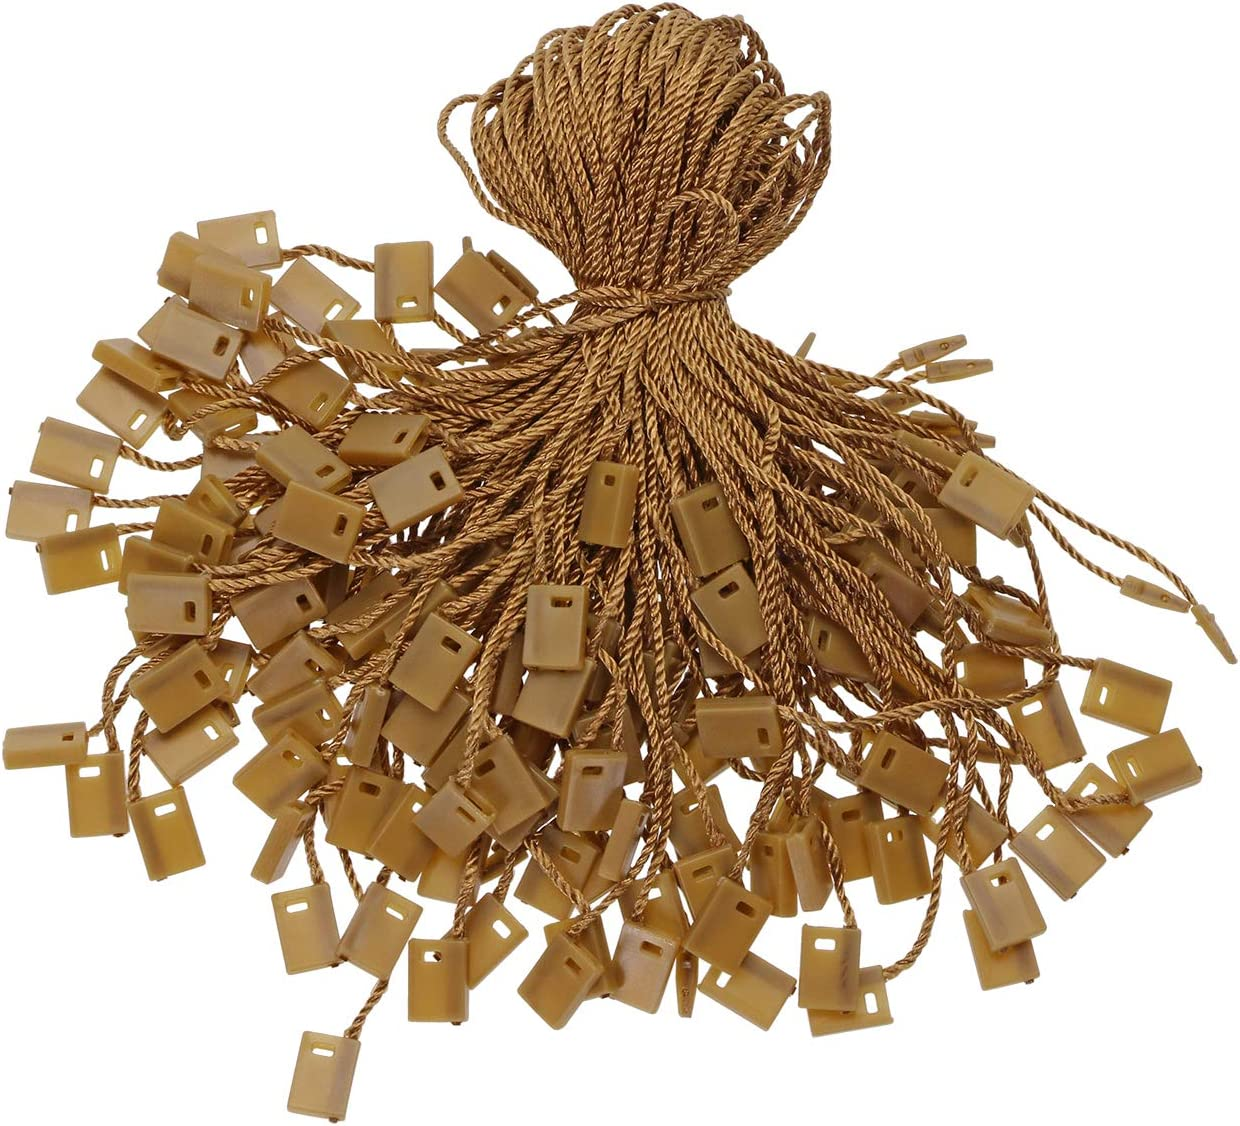 Beige 120PCS Tupalizy 7 Inch Nylon Hang Tag String for Clothes Gift Bags Price Tags Shoes Snap Lock Pin Loop Fastener Hook Ties Tag Rope for Belts Pocket Squares Luggage Label Attachment